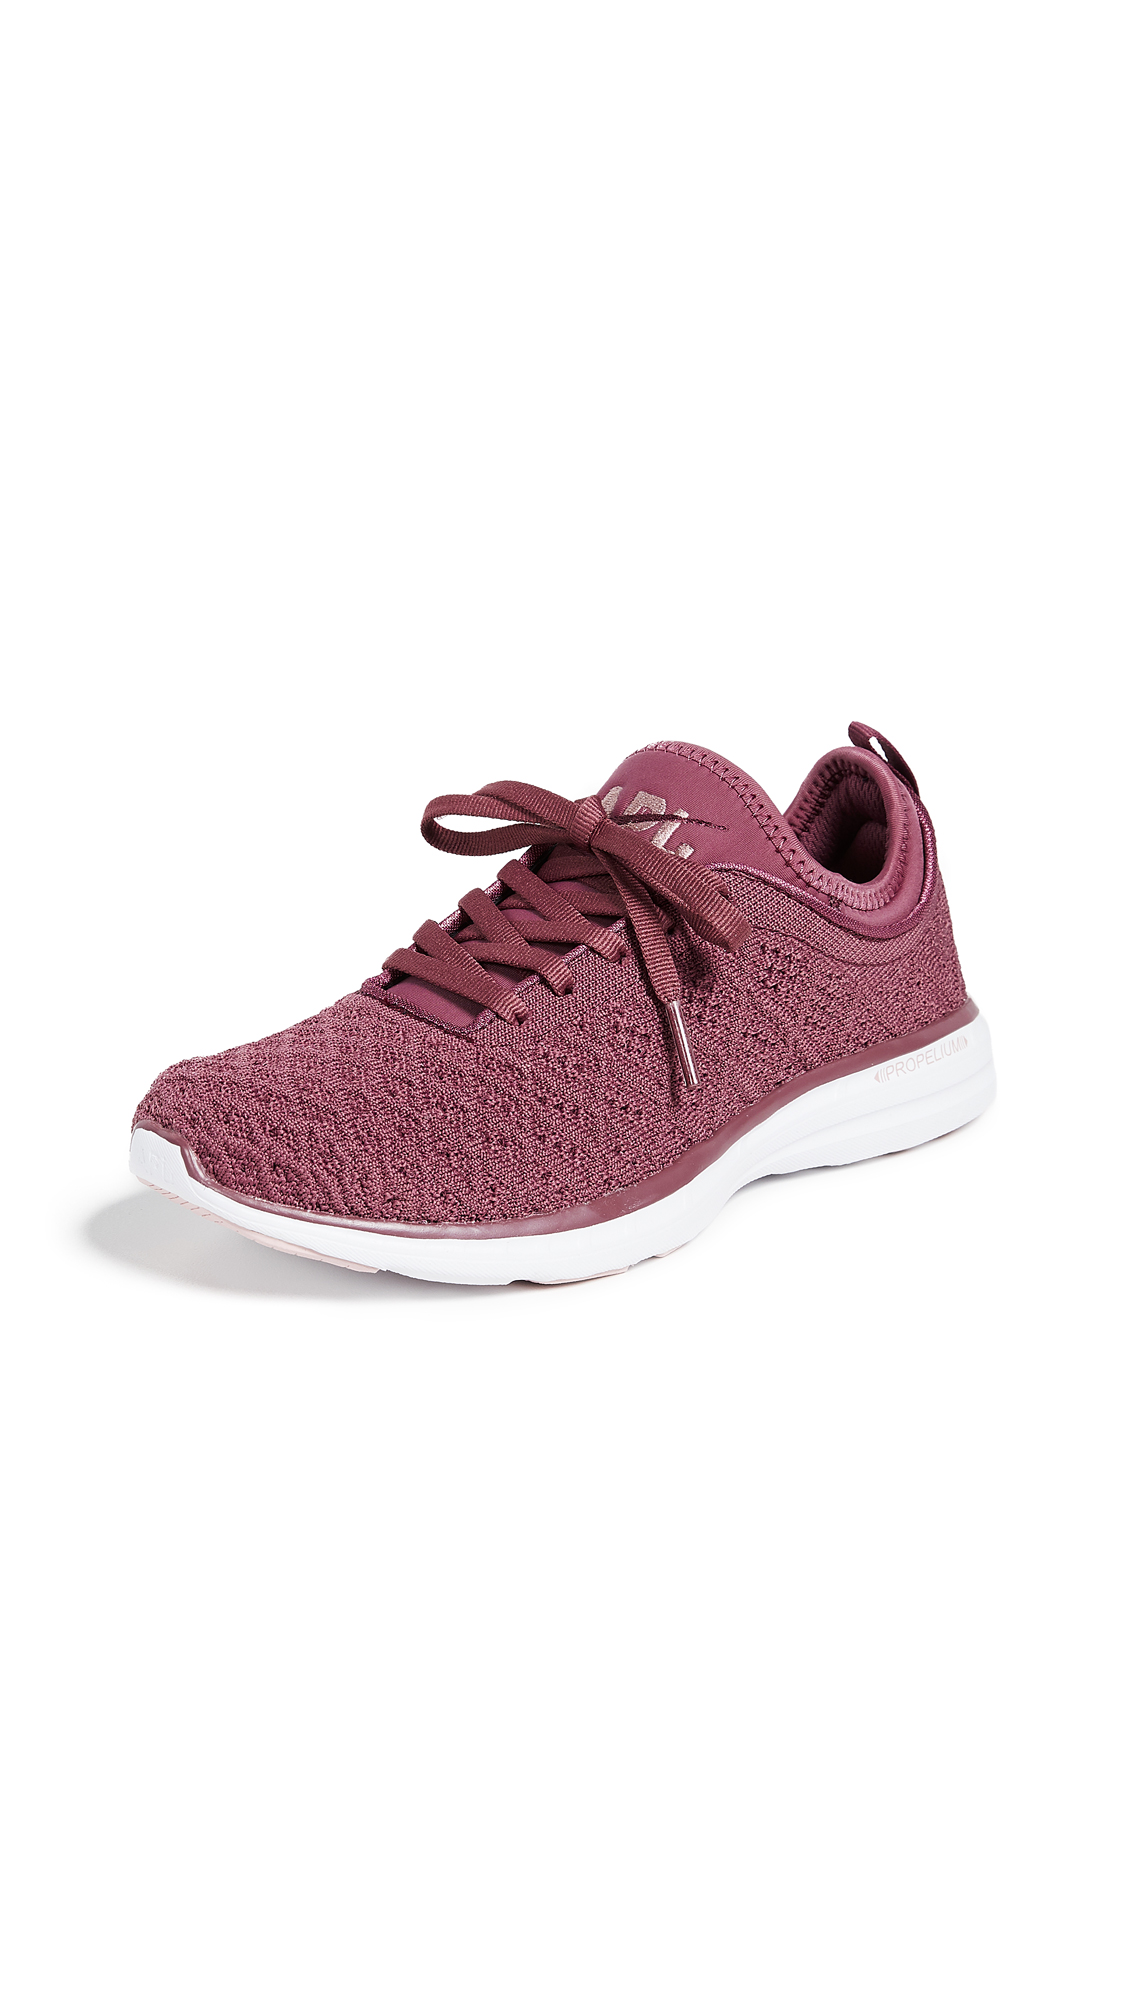 APL: Athletic Propulsion Labs TechLoom Phantom Sneakers - Victorian Red/Dusty Rose